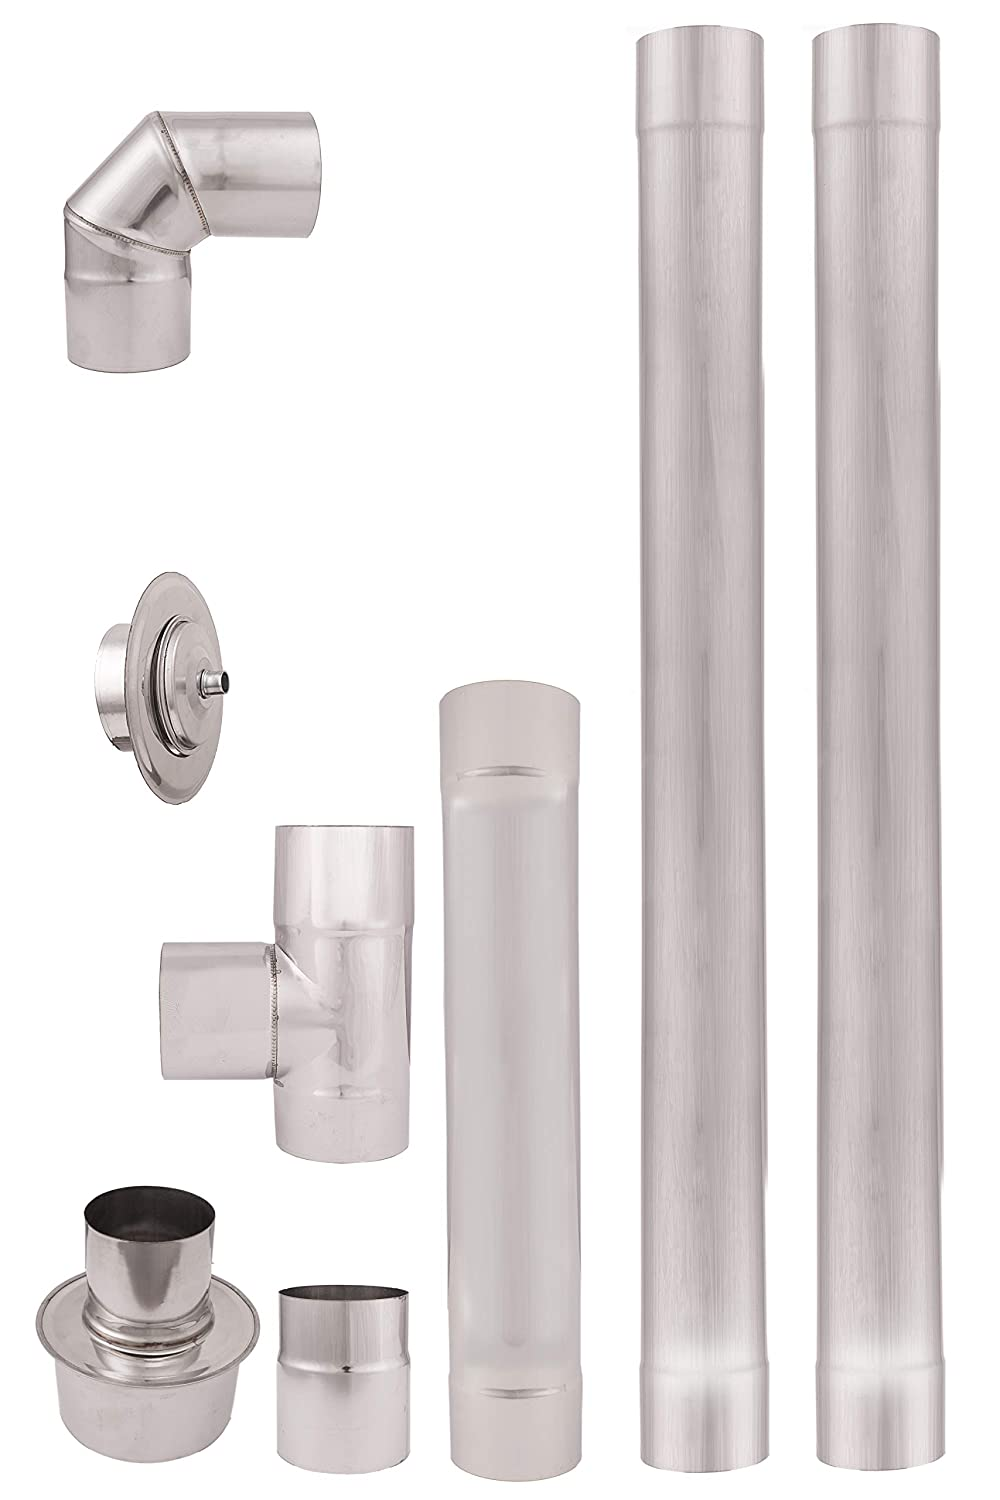 Diameter 80 mm Stainless Steel Pellet Stove Pipe, Exhaust Pipe, Elbow Pipe for Pellet Stove Accessories AISI 304, 2 X 1 meter Straight Length Chimney Pipe Liner, 90° Elbow, Tee with Cleaning plug Coupling connector, Rosette Pipe increaser 80mm to 130mm